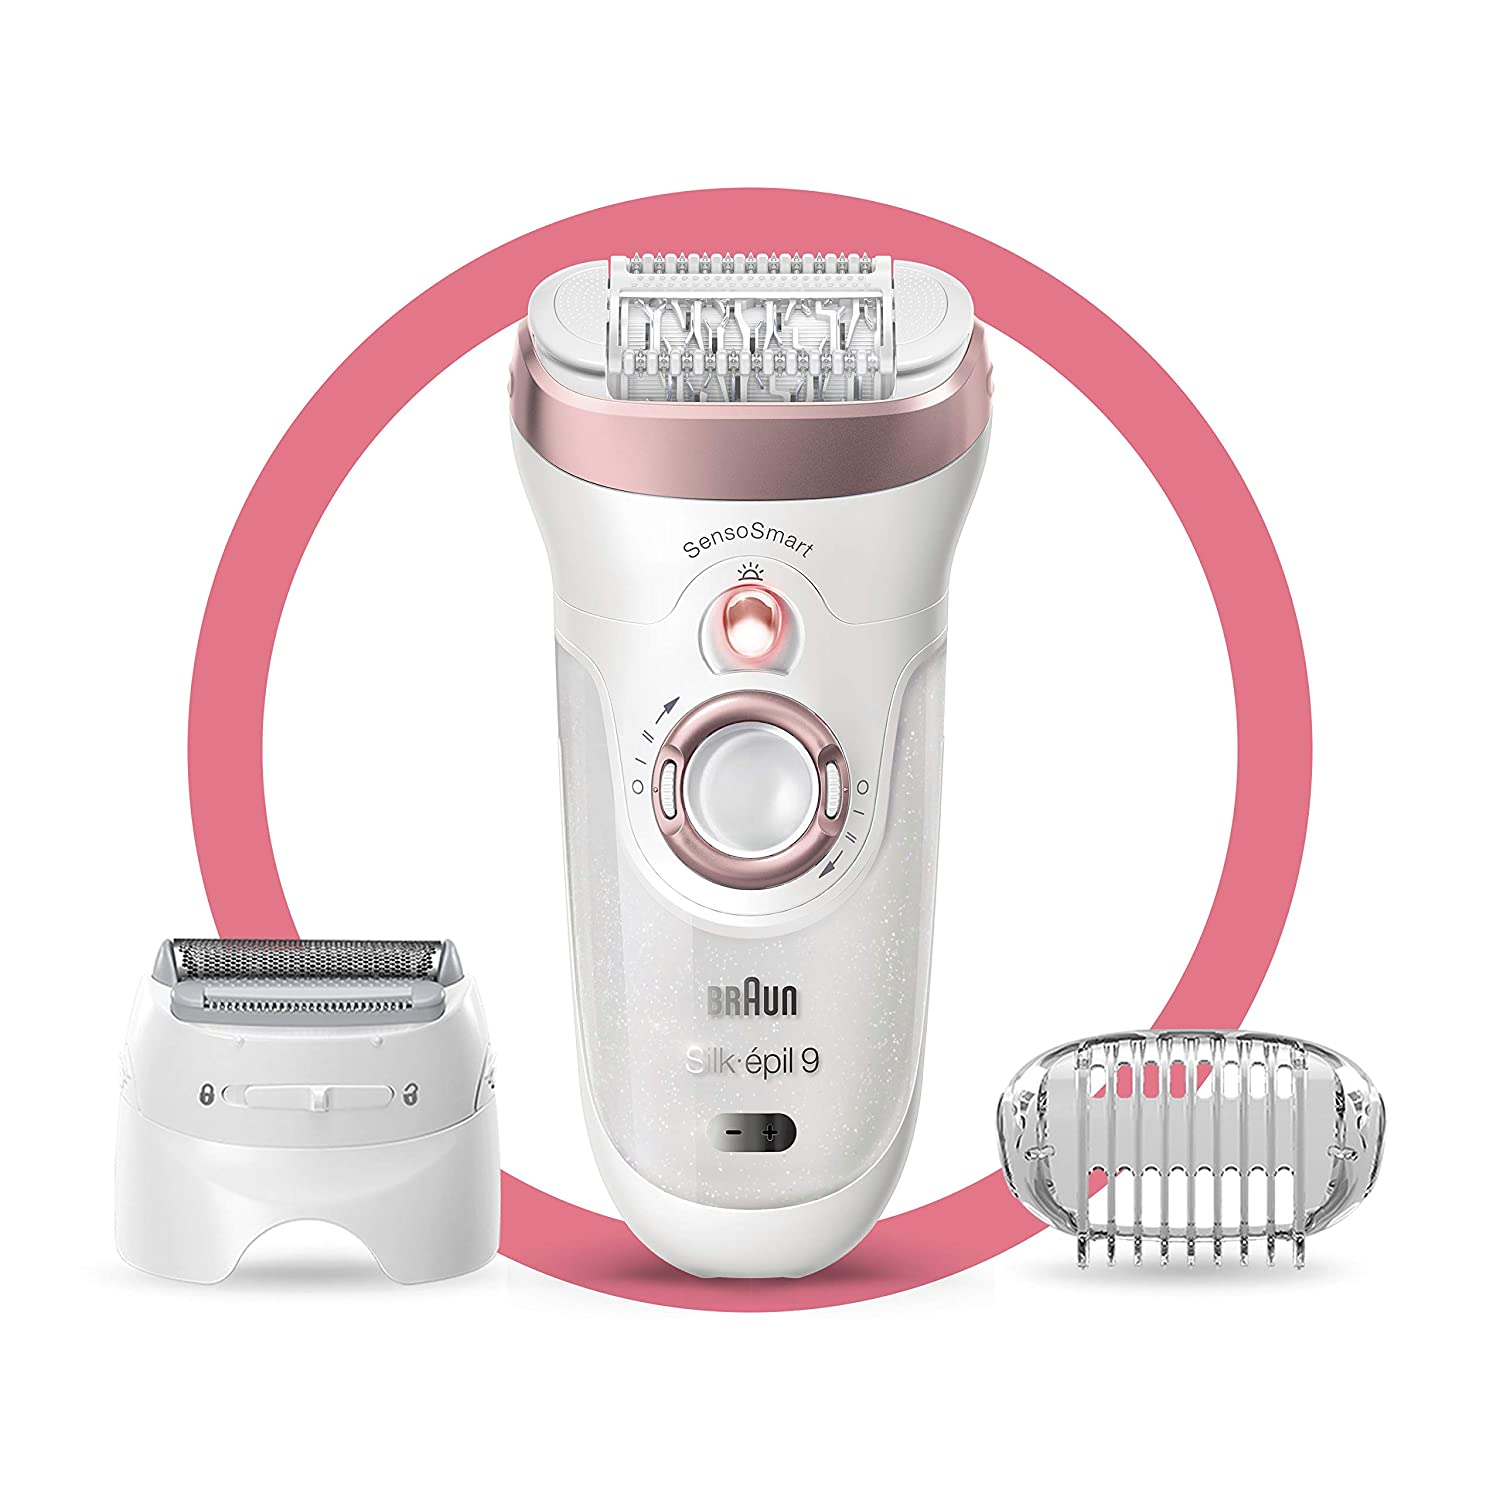 Braun Epilator Silk épil 9 9 720 Facial Hair Removal For Women Wet Dry Womens Shaver Trimmer Cordless Rechargeable Beauty